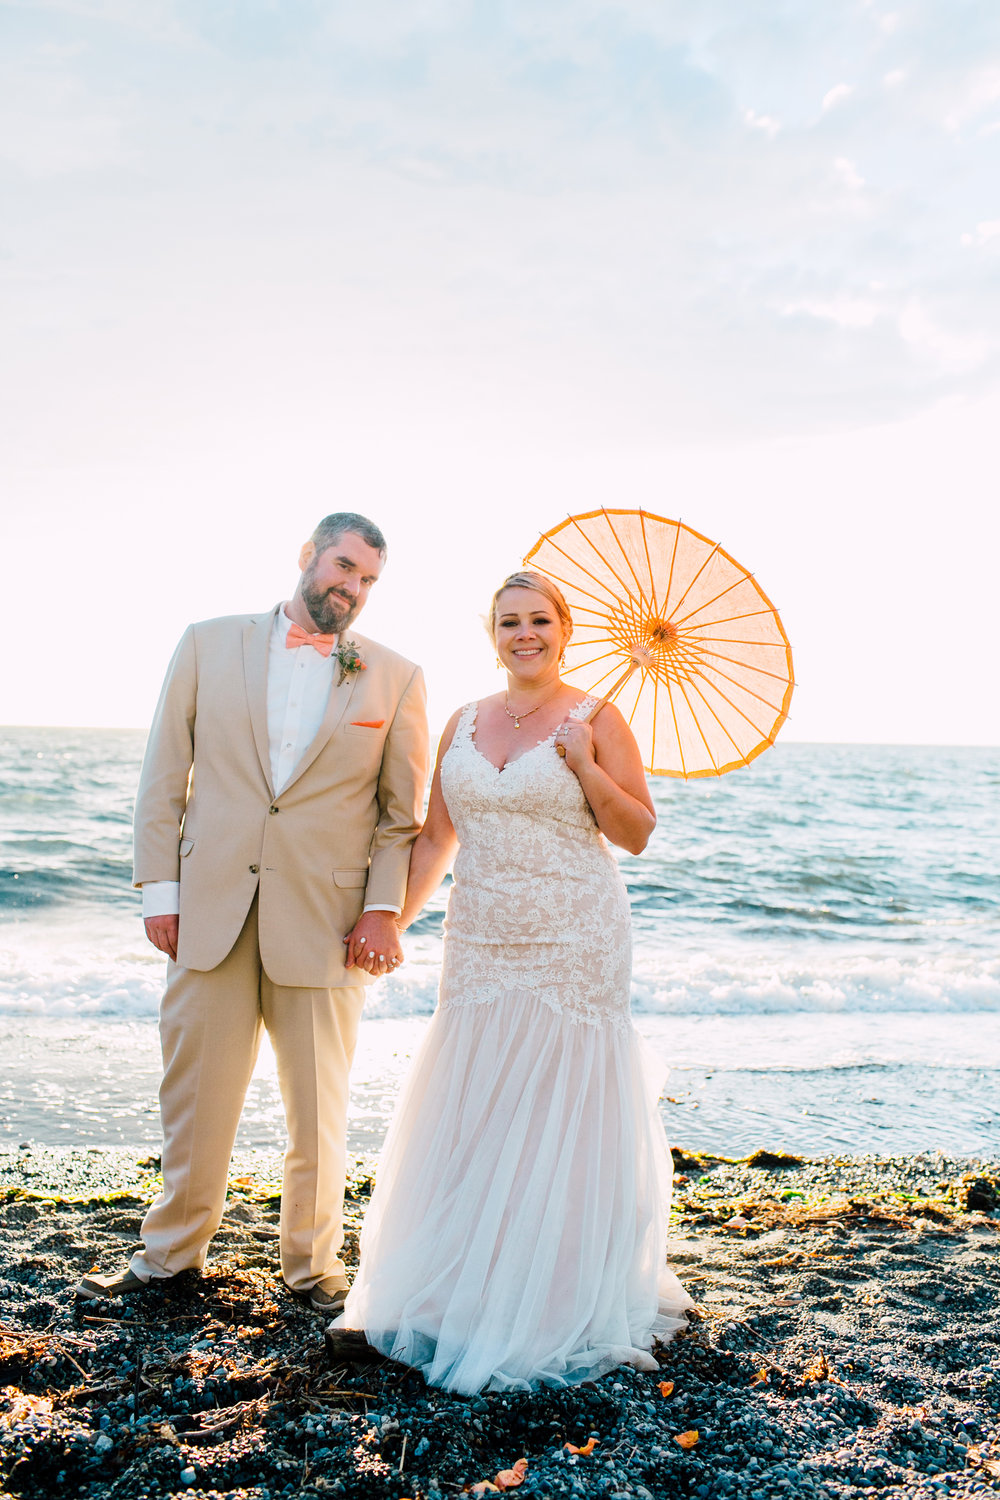 021-bellingham-wedding-photographer-beach-katheryn-moran-elisa-phillip.jpg